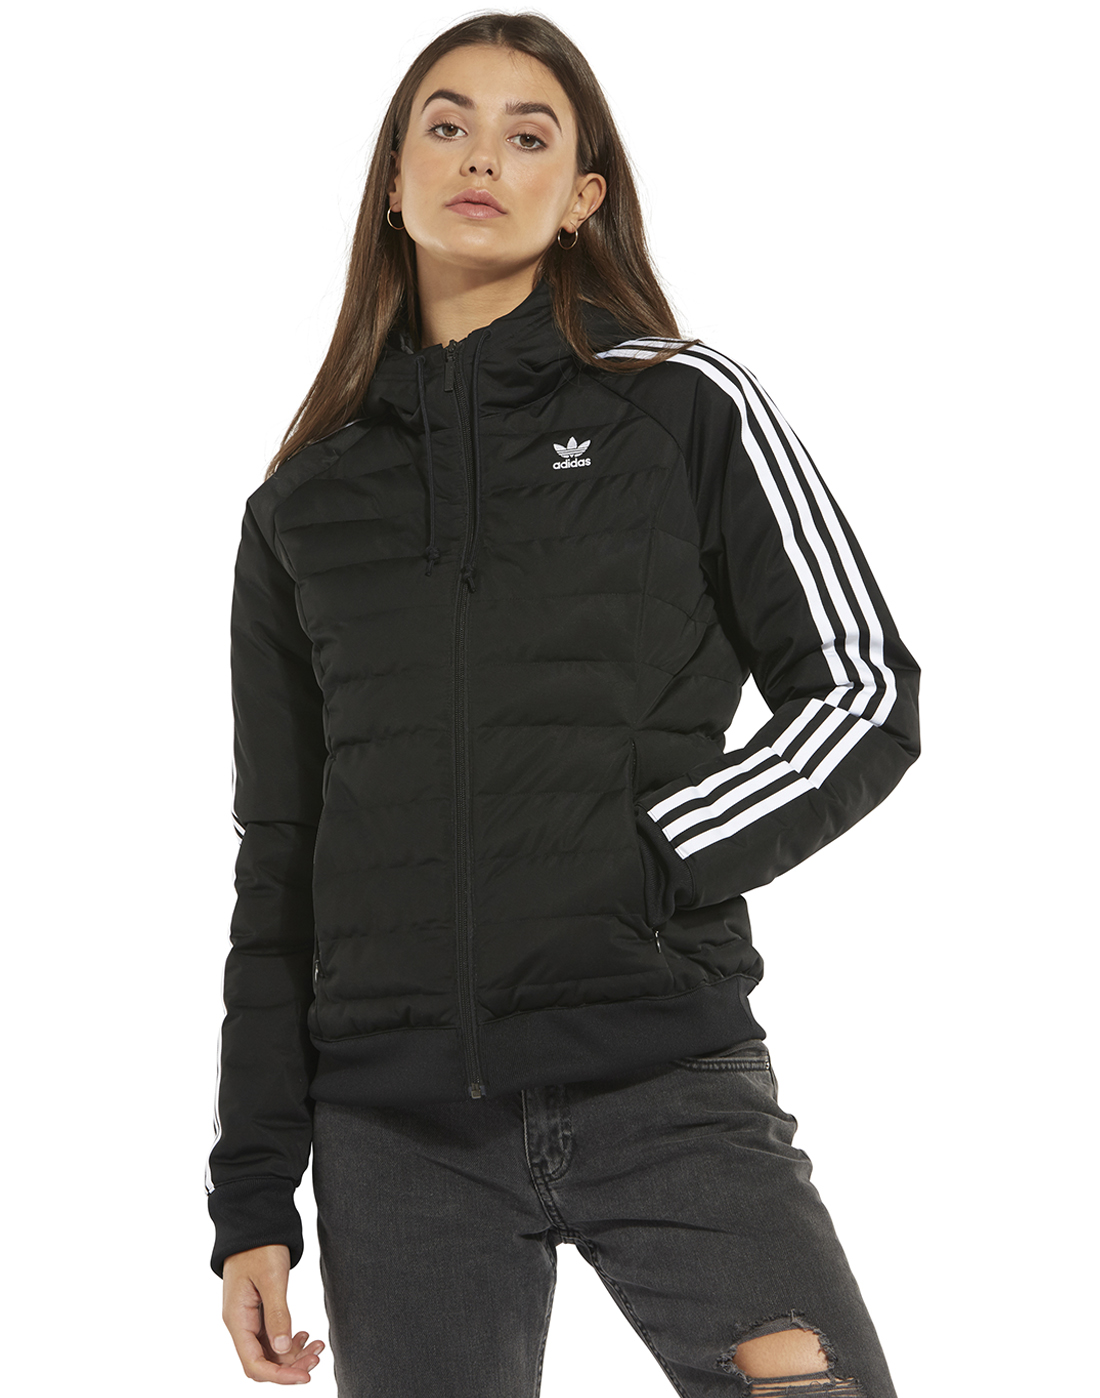 fa97ce17 Women's Black adidas Originals Slim Padded Jacket | Life Style Sports